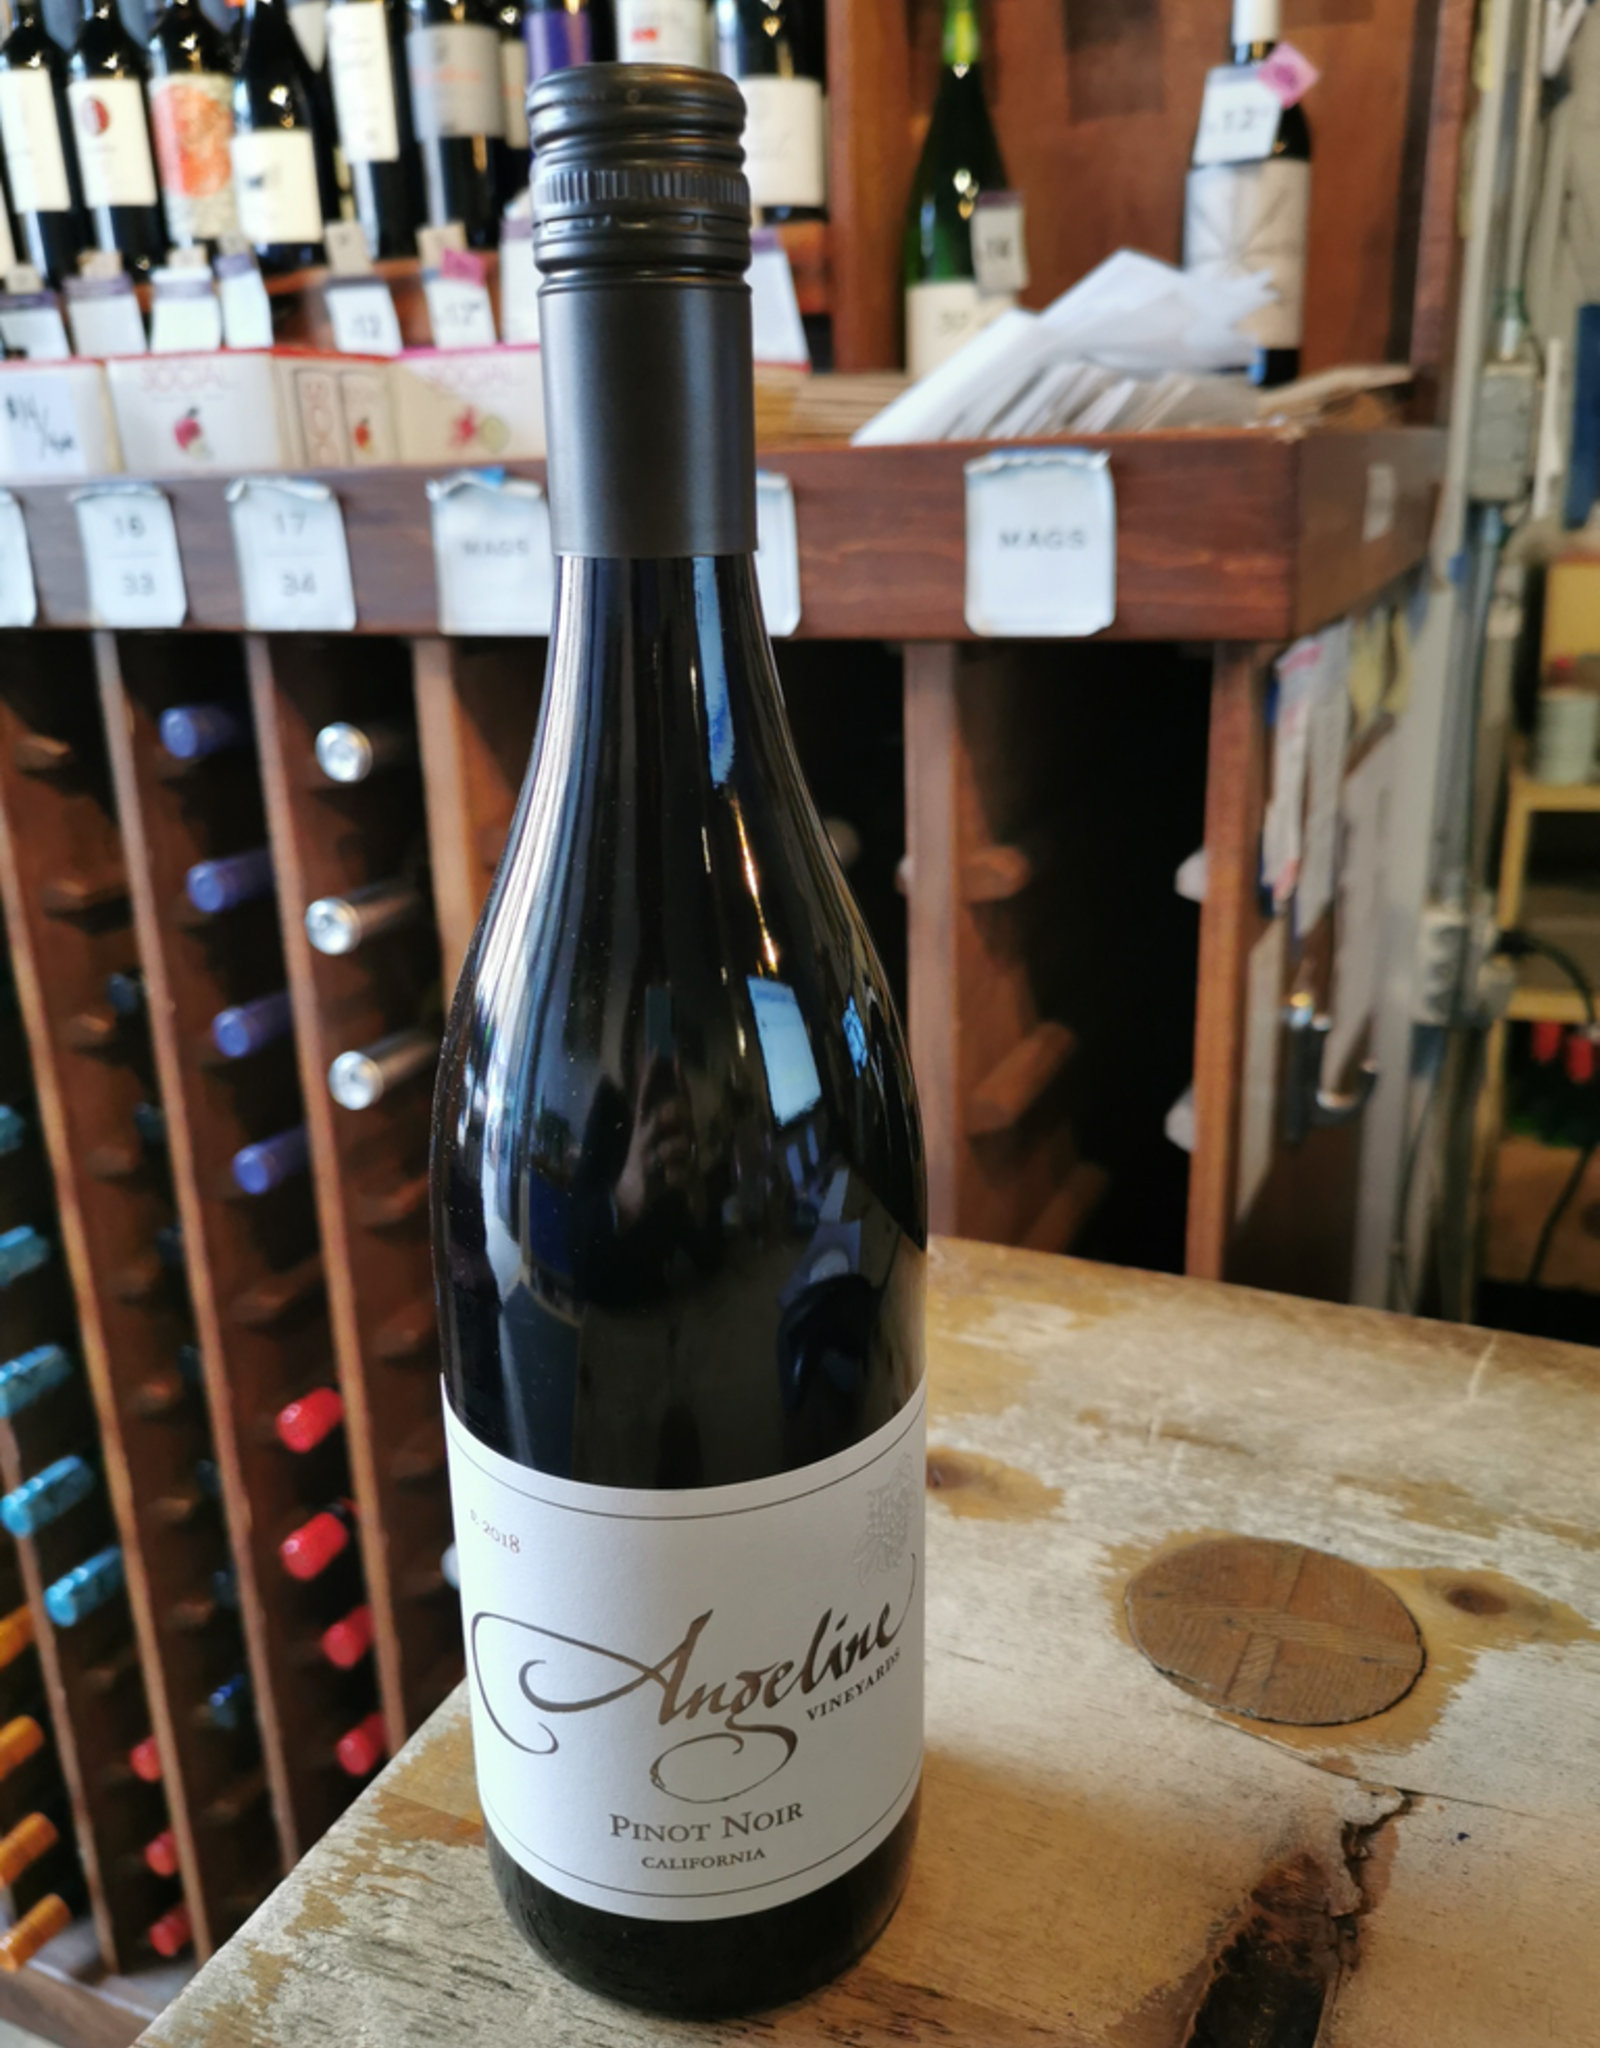 2018 Angeline Pinot Noir - California